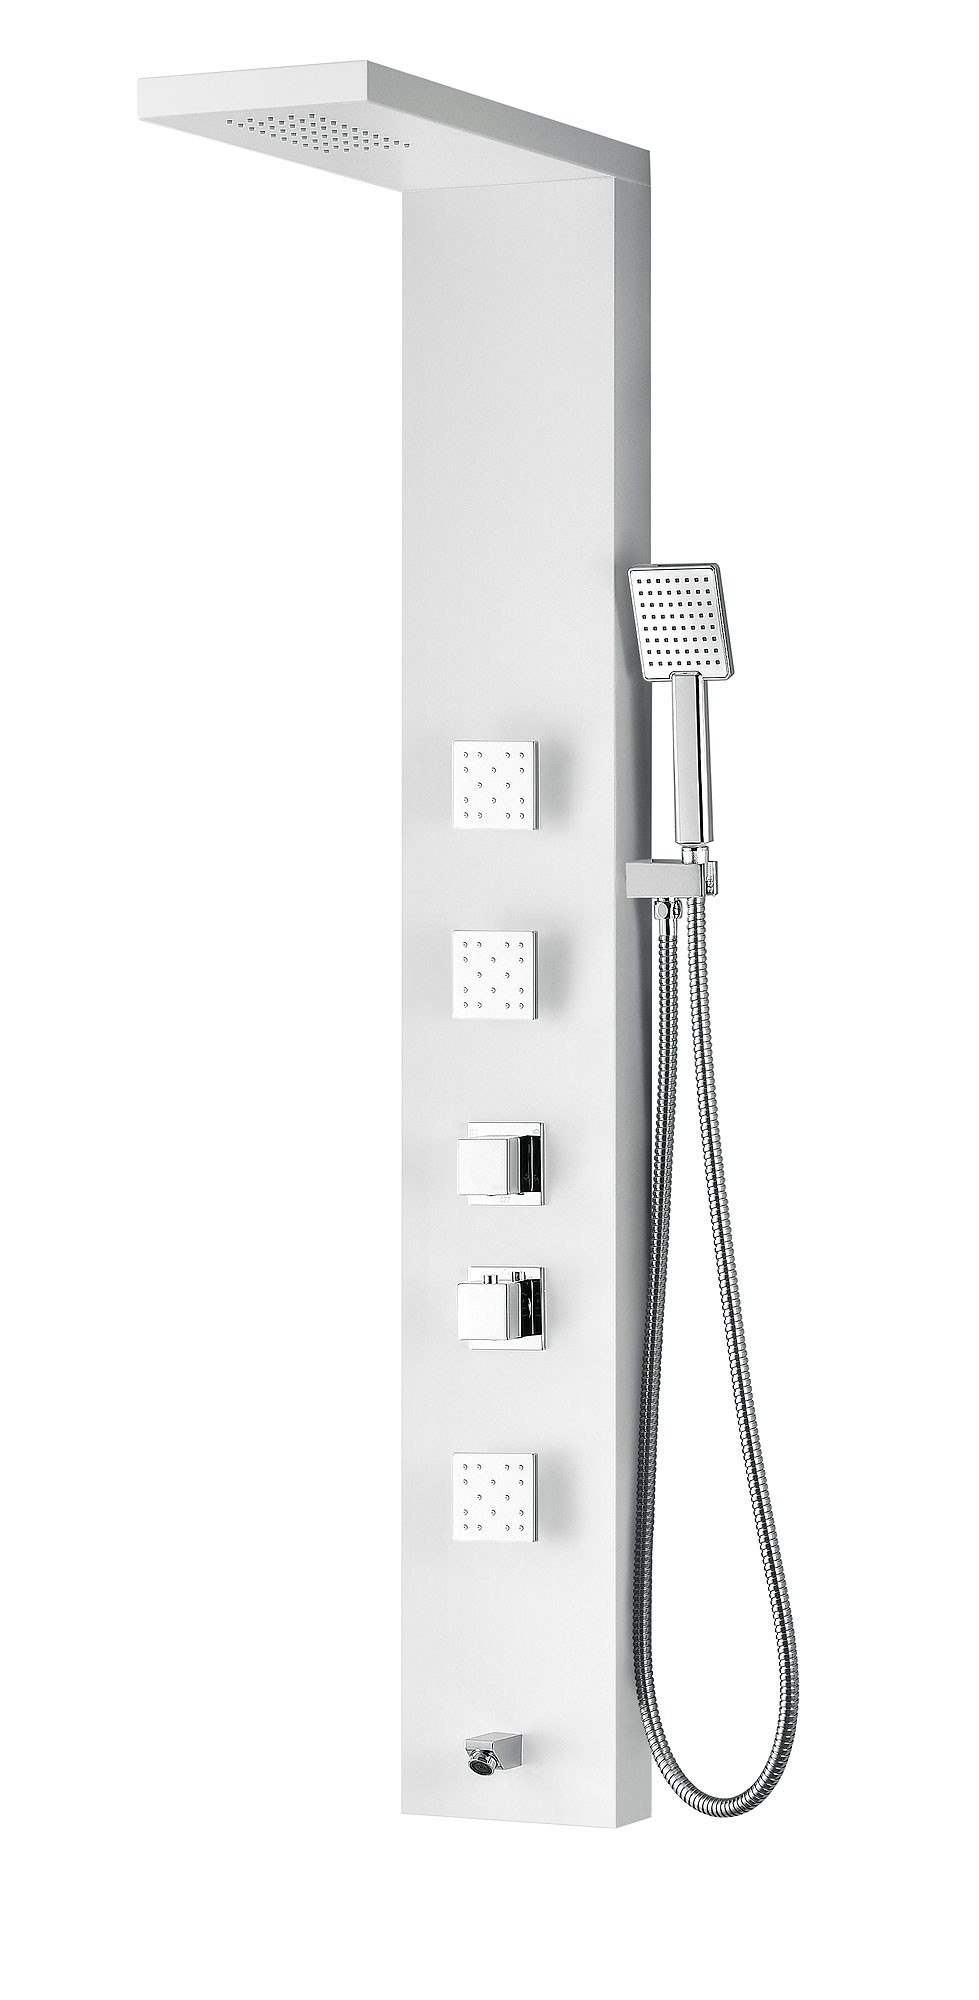 ANZZI SP-AZ054 Delta Shower Panel System With Two Knob Handles In White